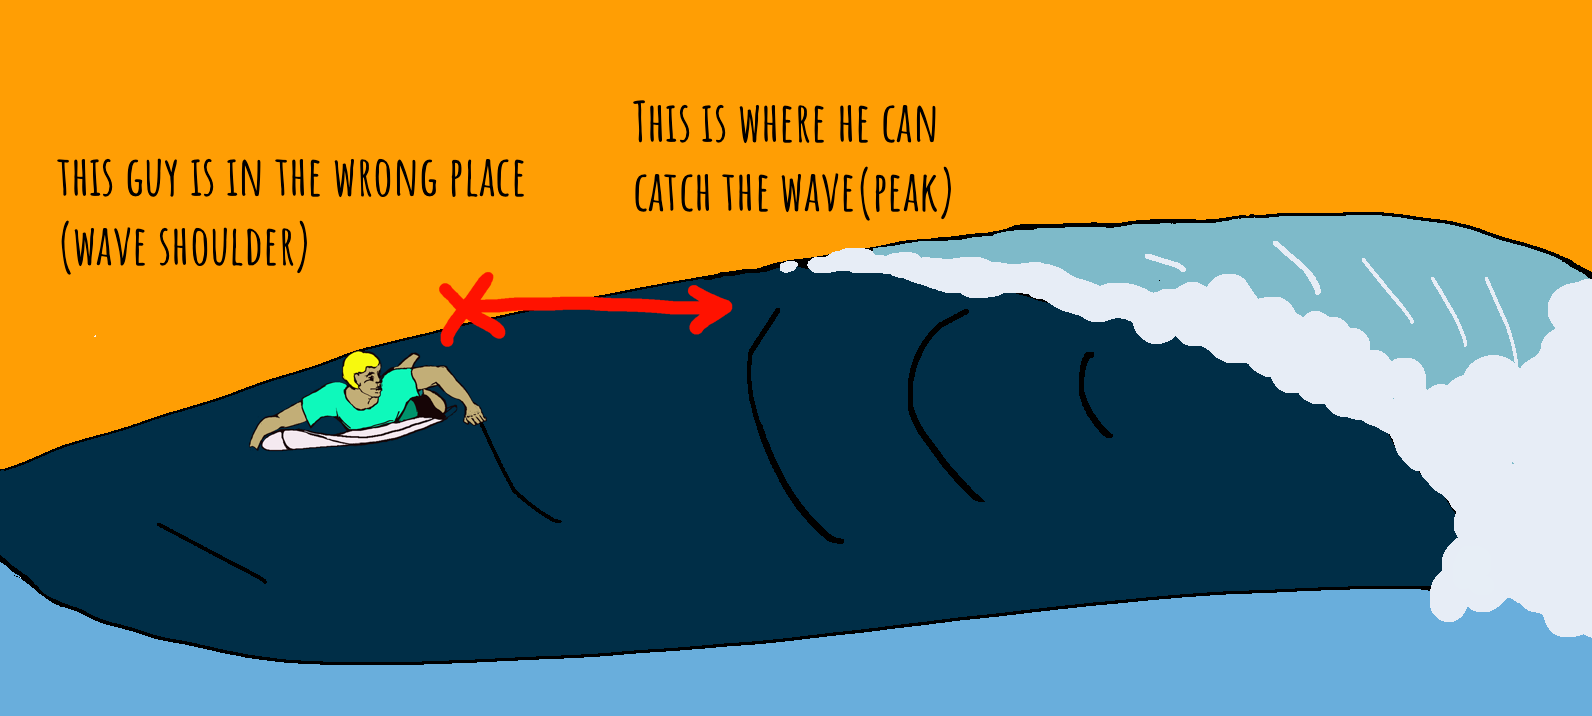 To do this, you need to be close to where the wave actually breaks. Most  surfers tend to wait 5-10 meters away from this point. It is safer there. - Catch A Wave PNG